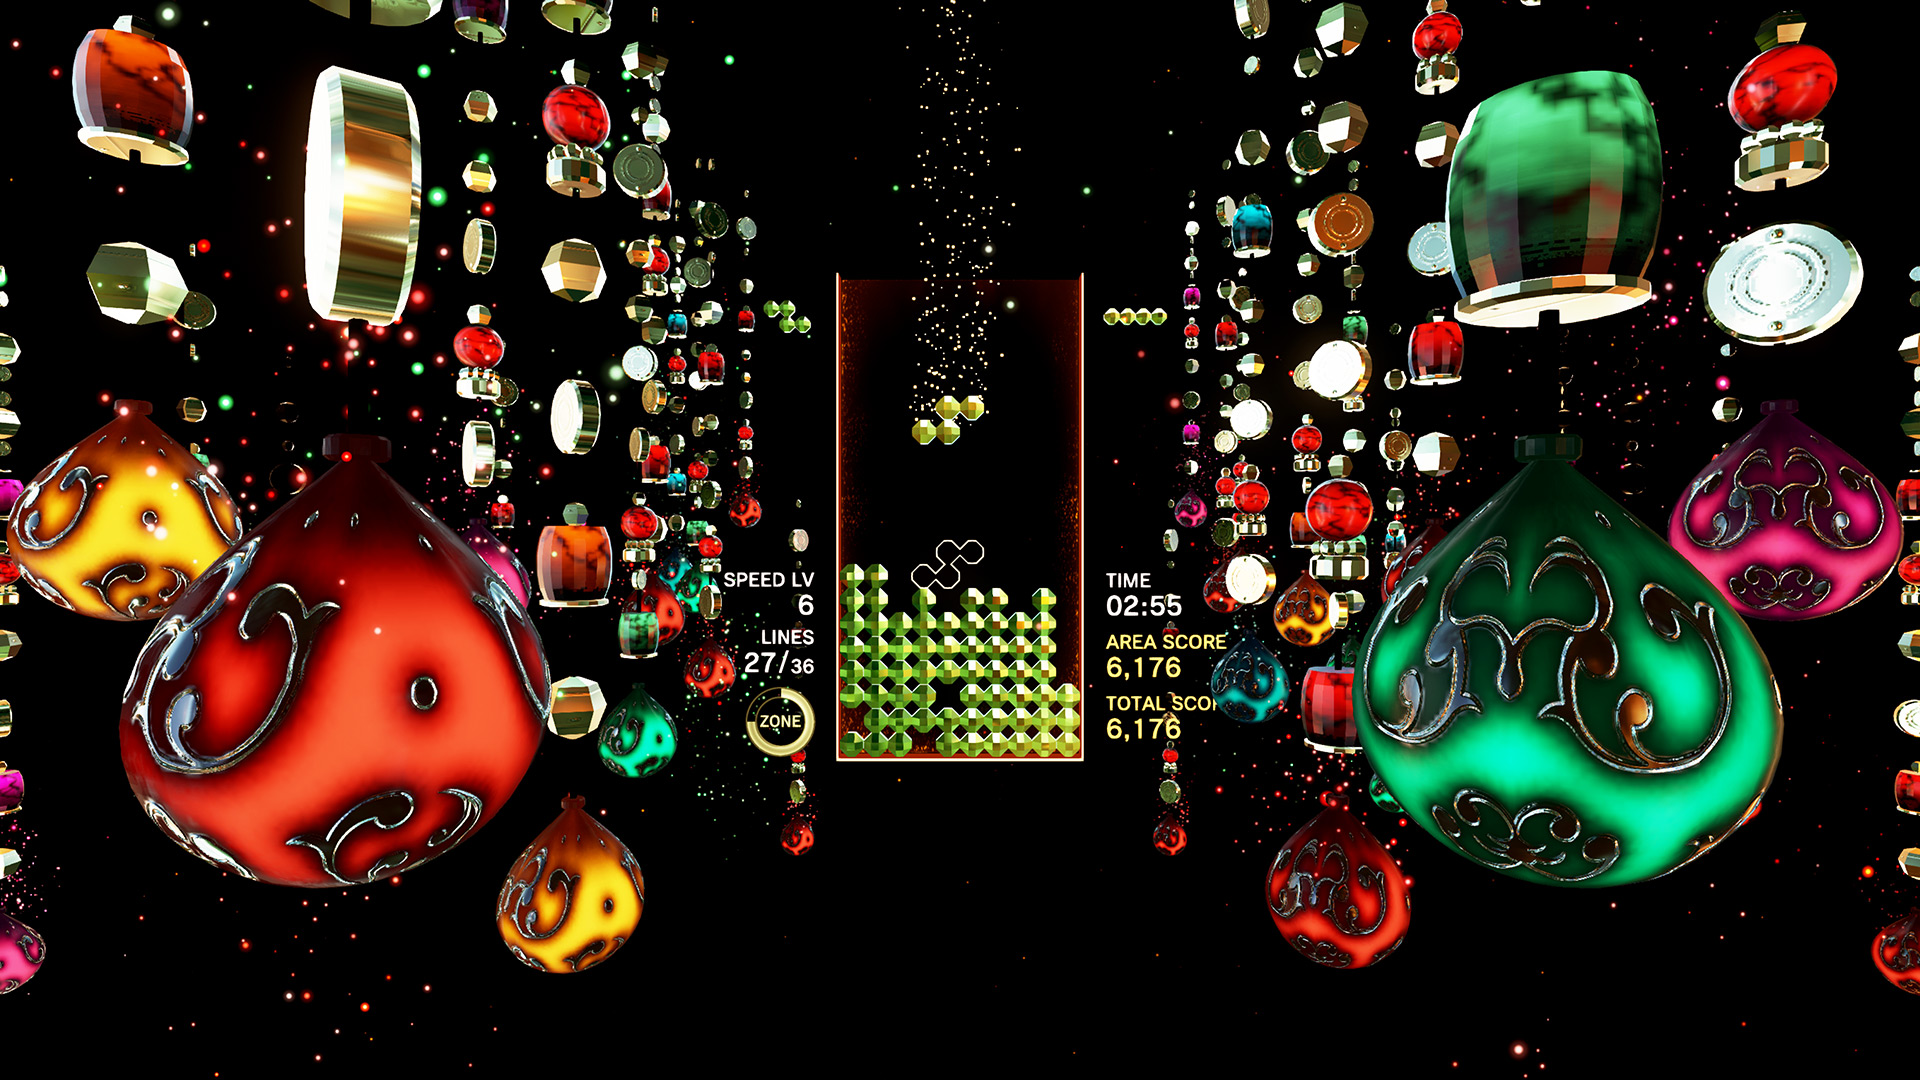 tetris effect game screenshot wallpaper 67840